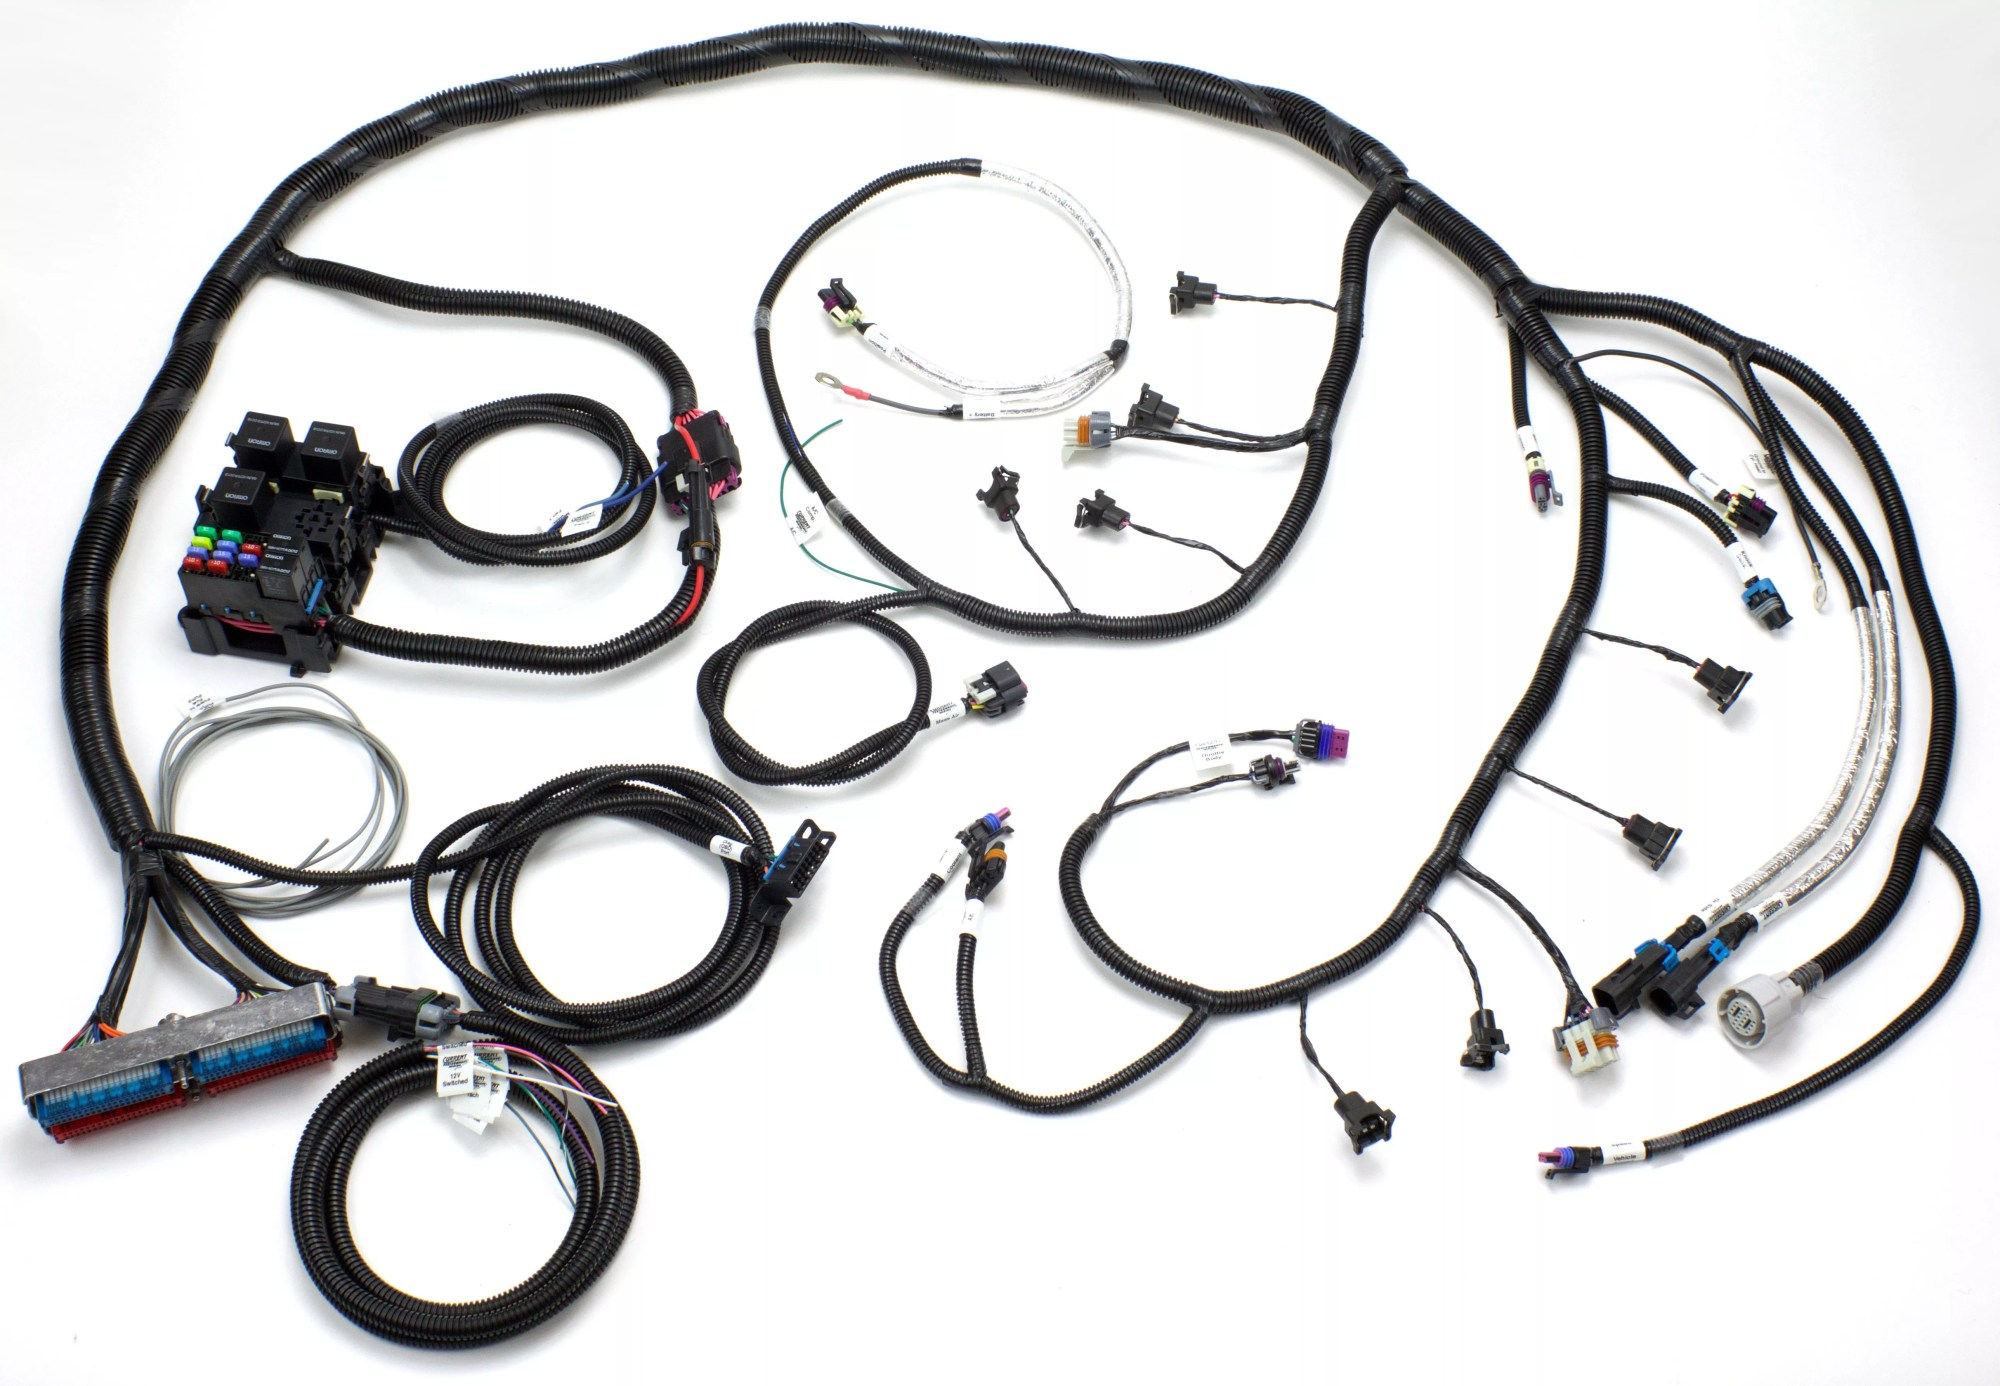 hight resolution of ls1 stand alone engine harness cable throttle current google painless wiring tbi wiring harness kit